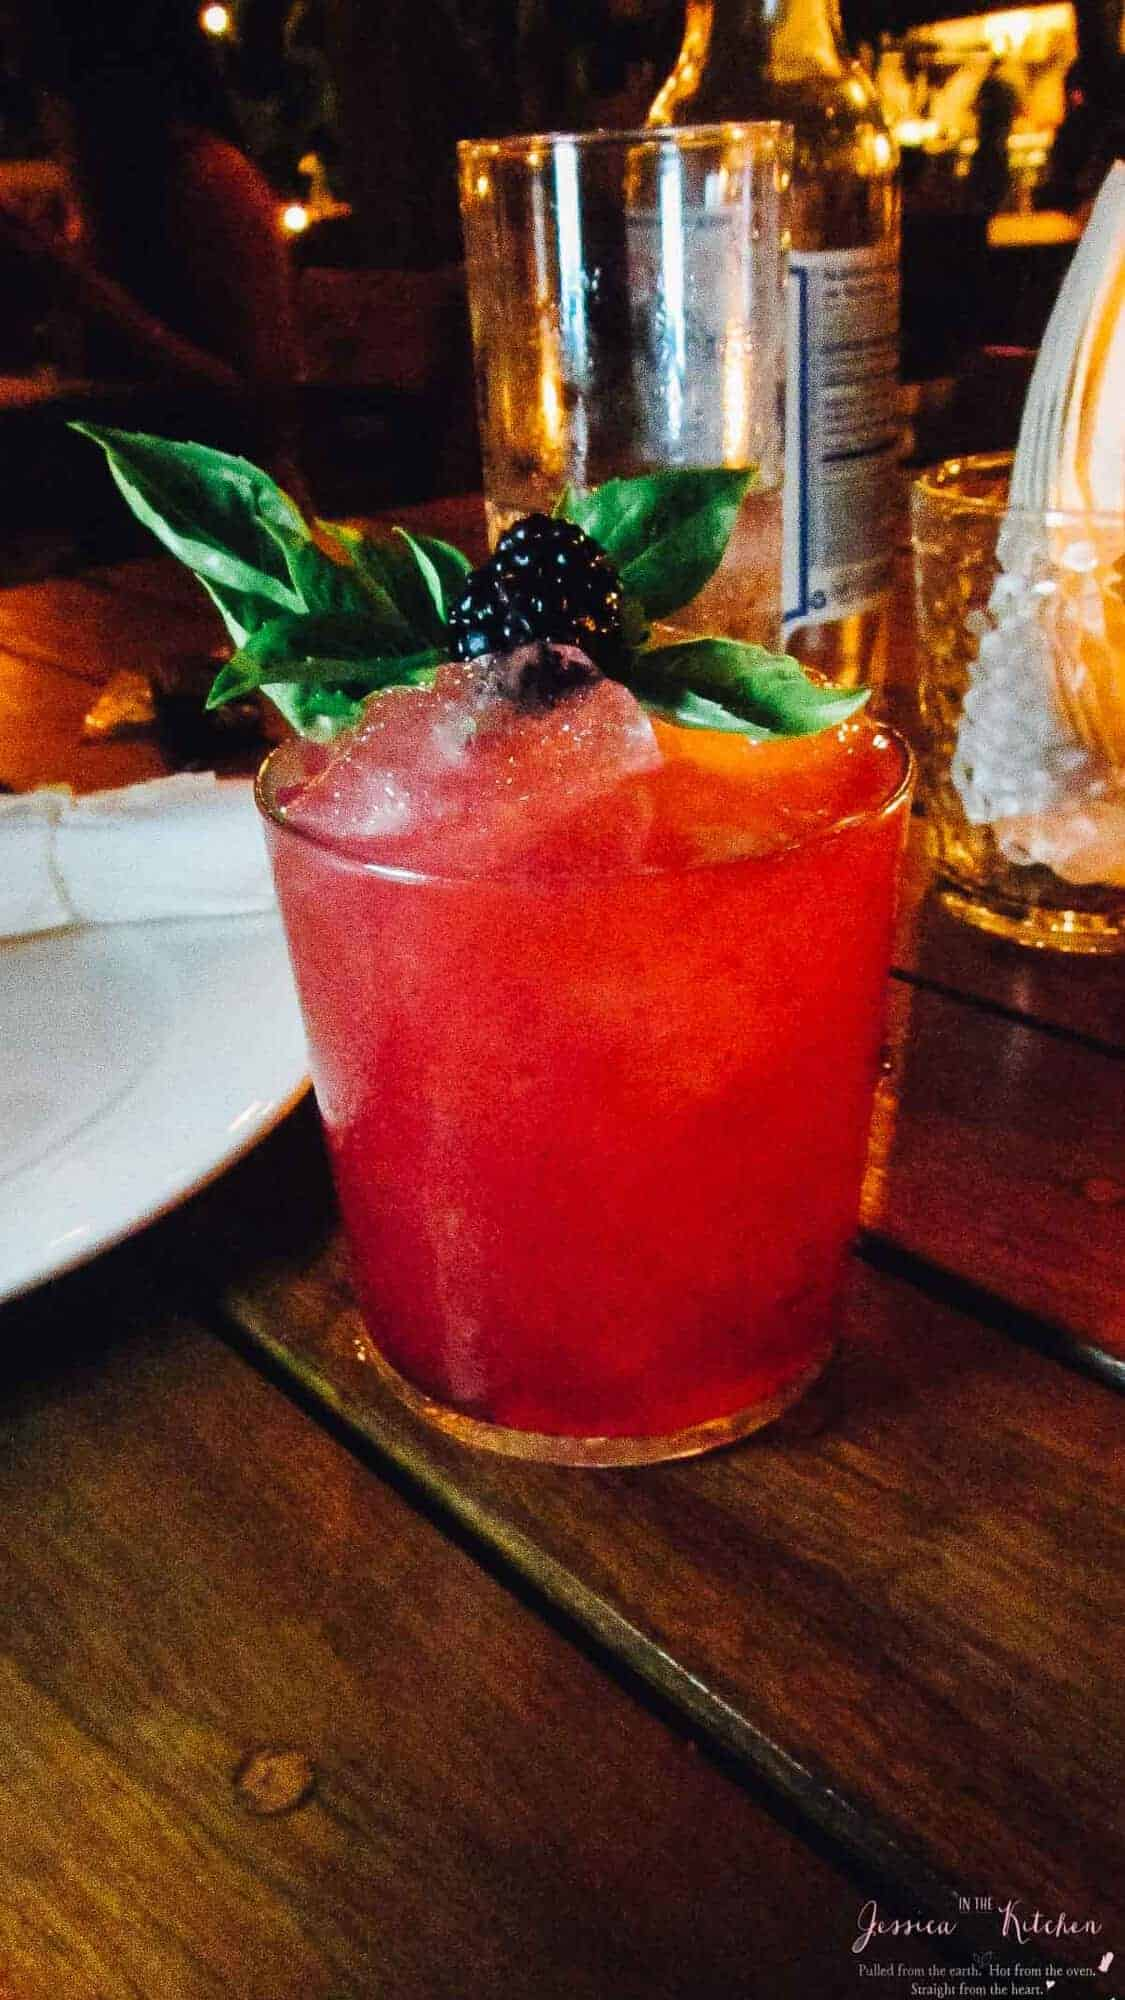 A red cocktail with blackberry garnish, on a wood table.